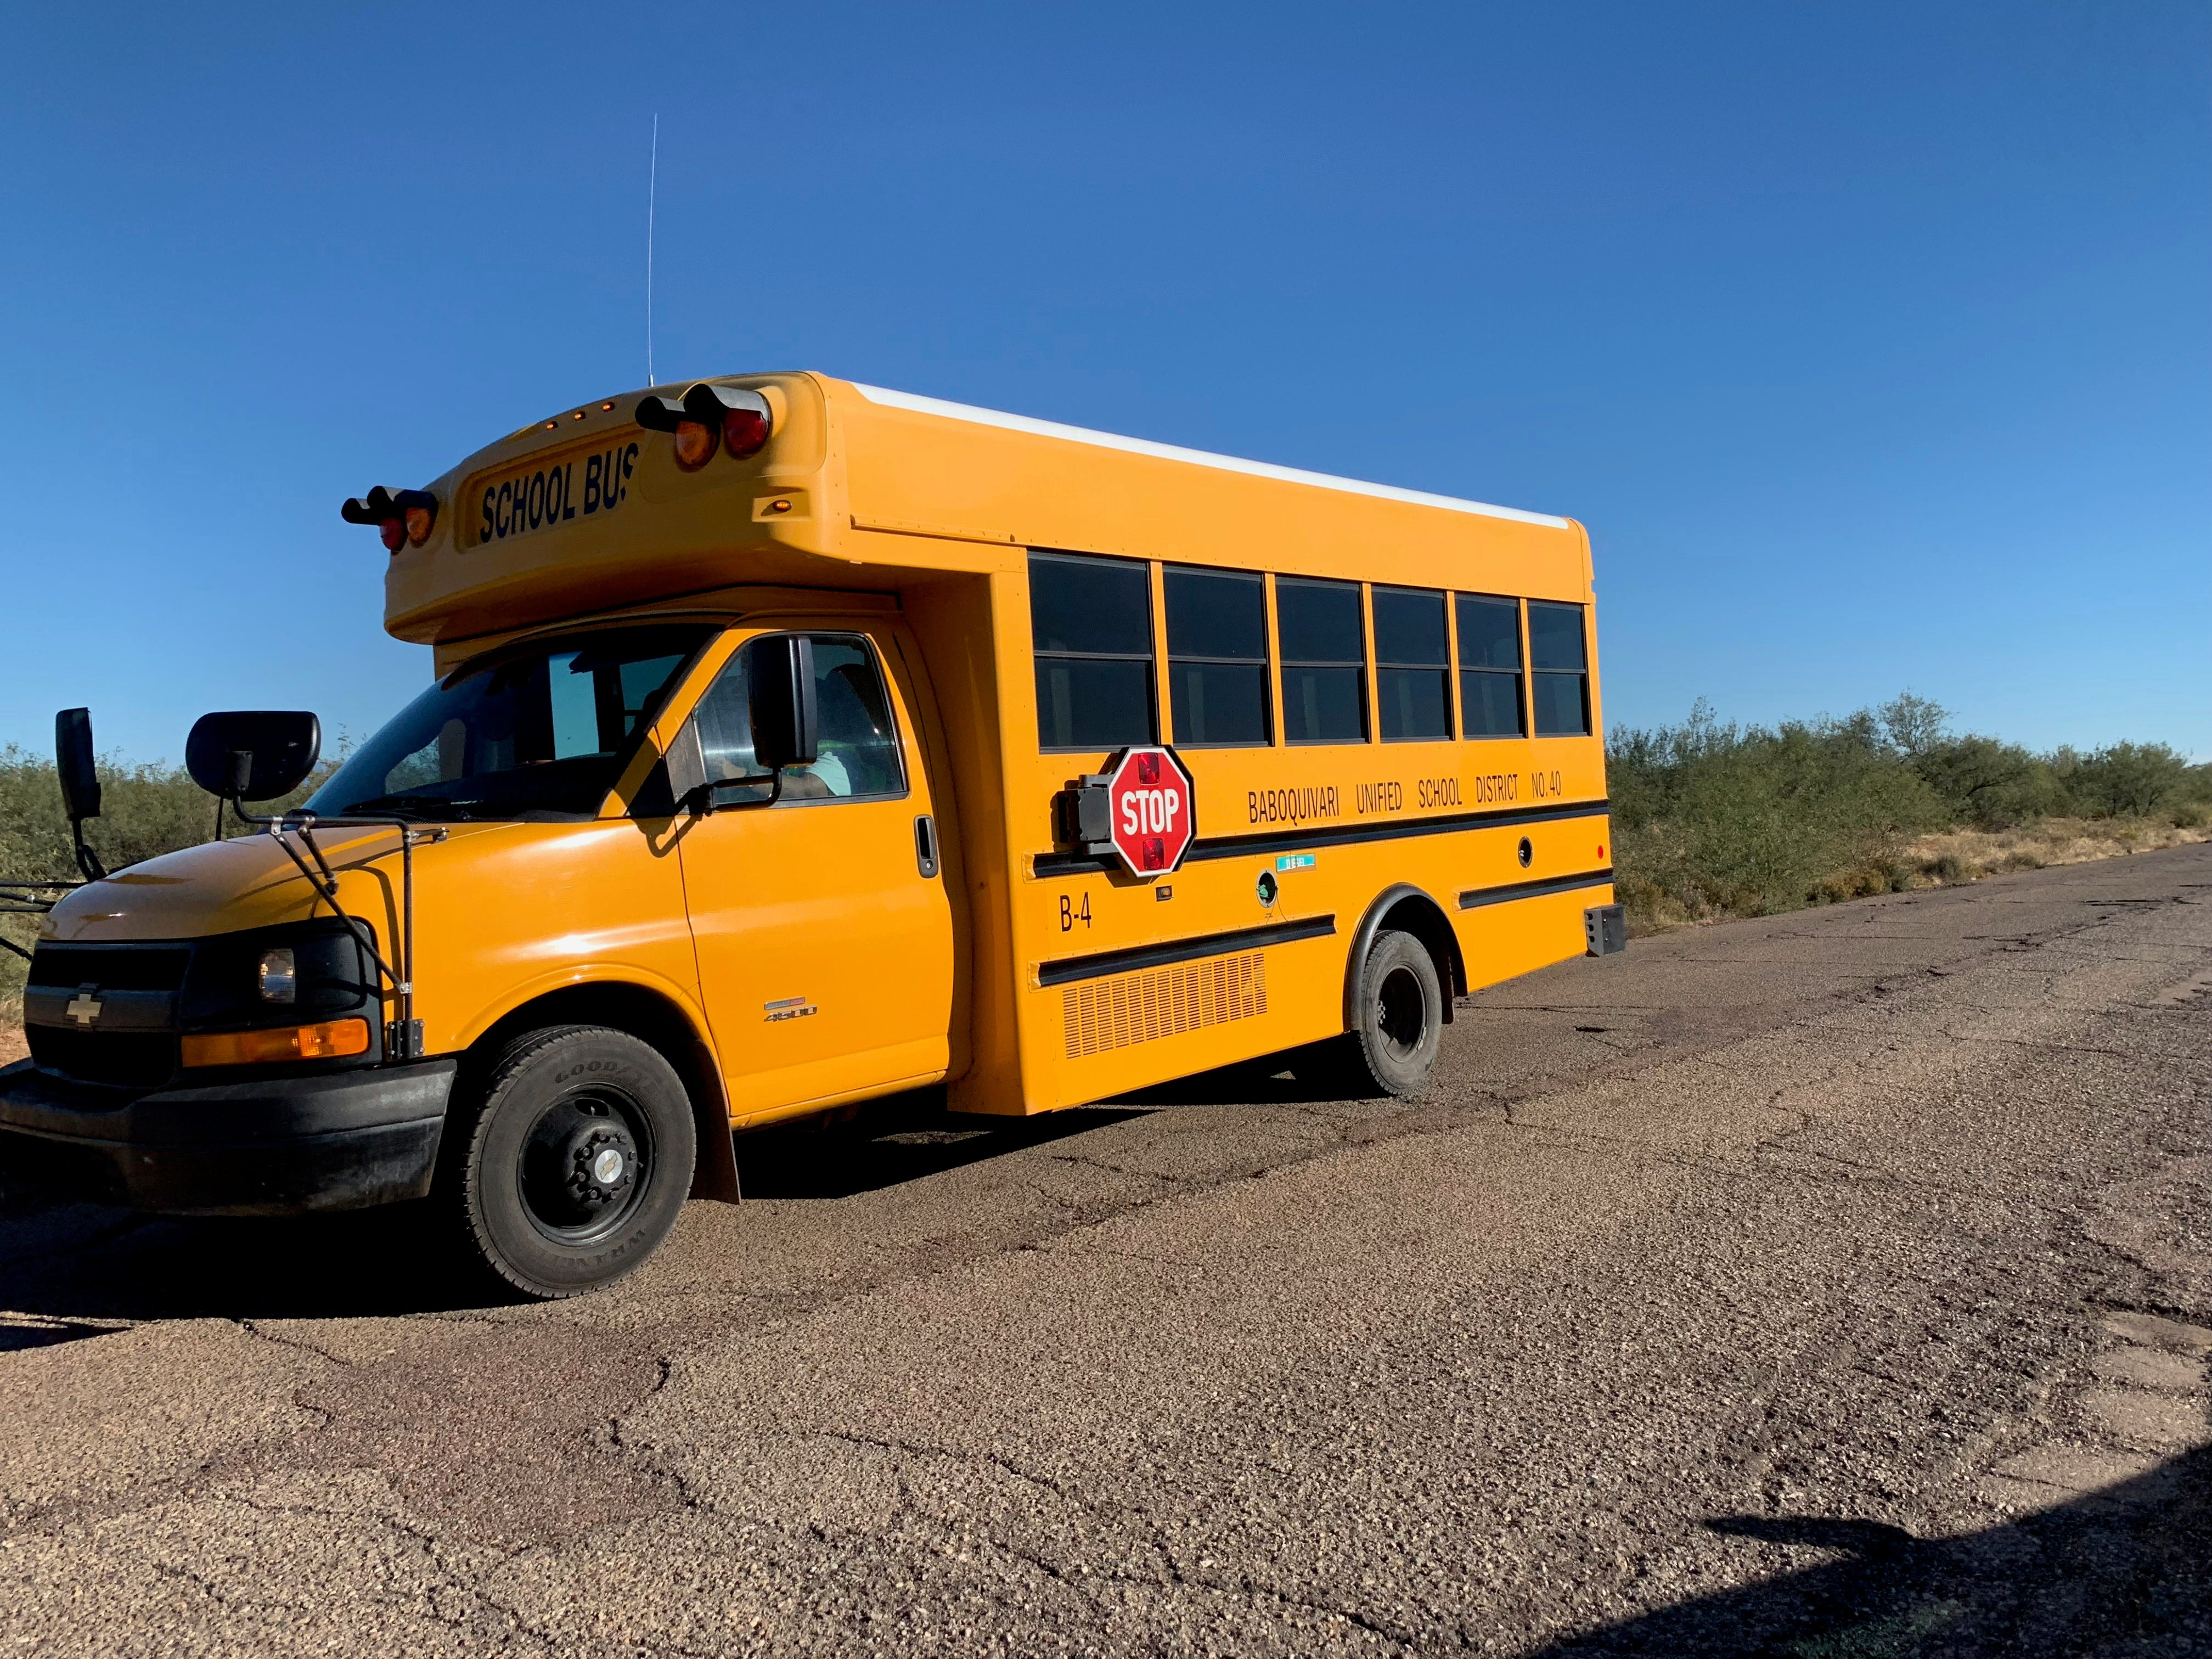 A school bus drives down a road to a village on the Tohono O'odham reservation in southern Arizona. The roads around villages experience extensive damage from flooding after rain.